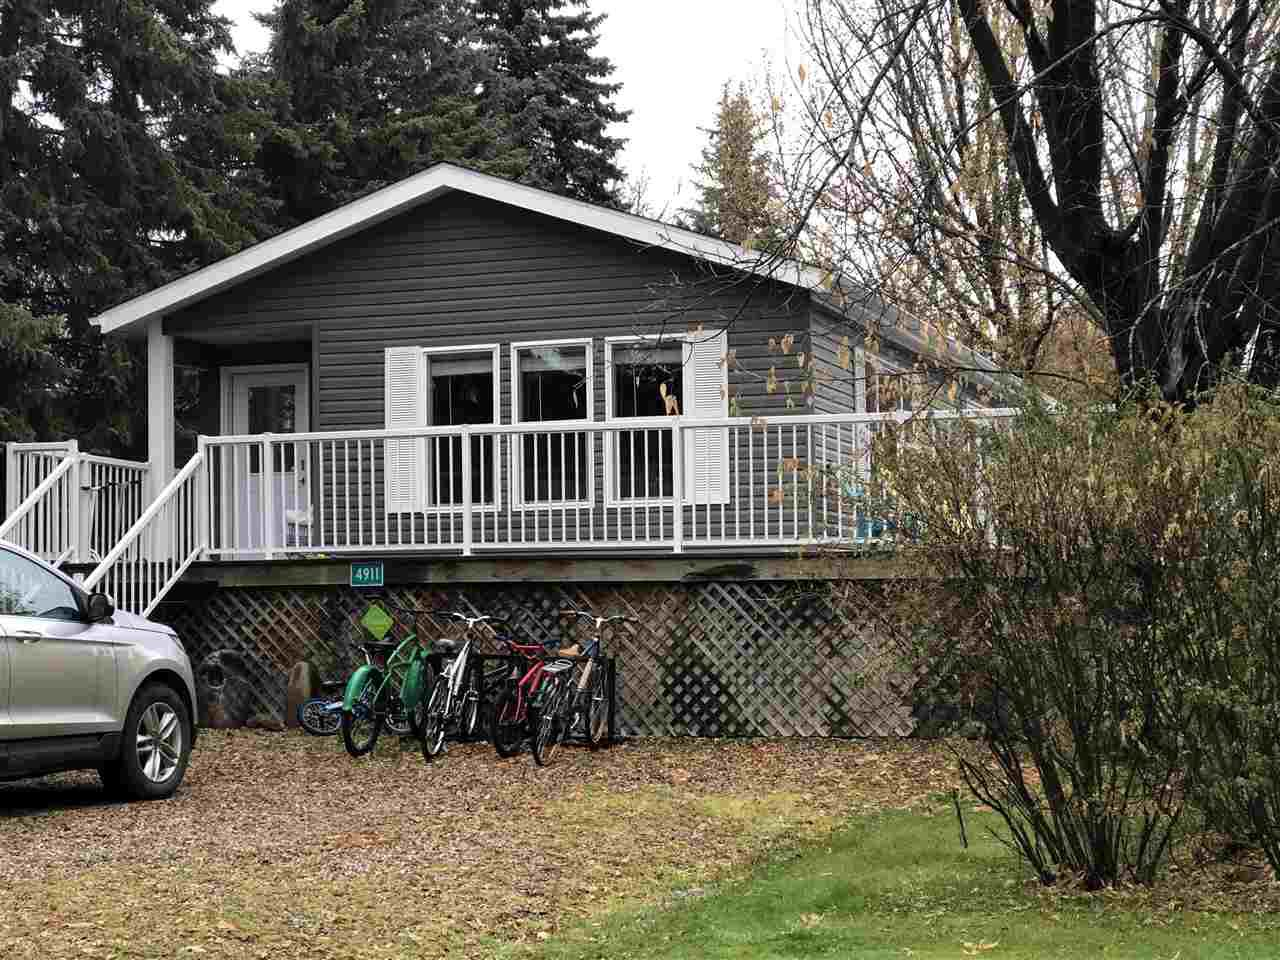 Main Photo: 4911 51 Street: Jarvie Manufactured Home for sale : MLS®# E4177213